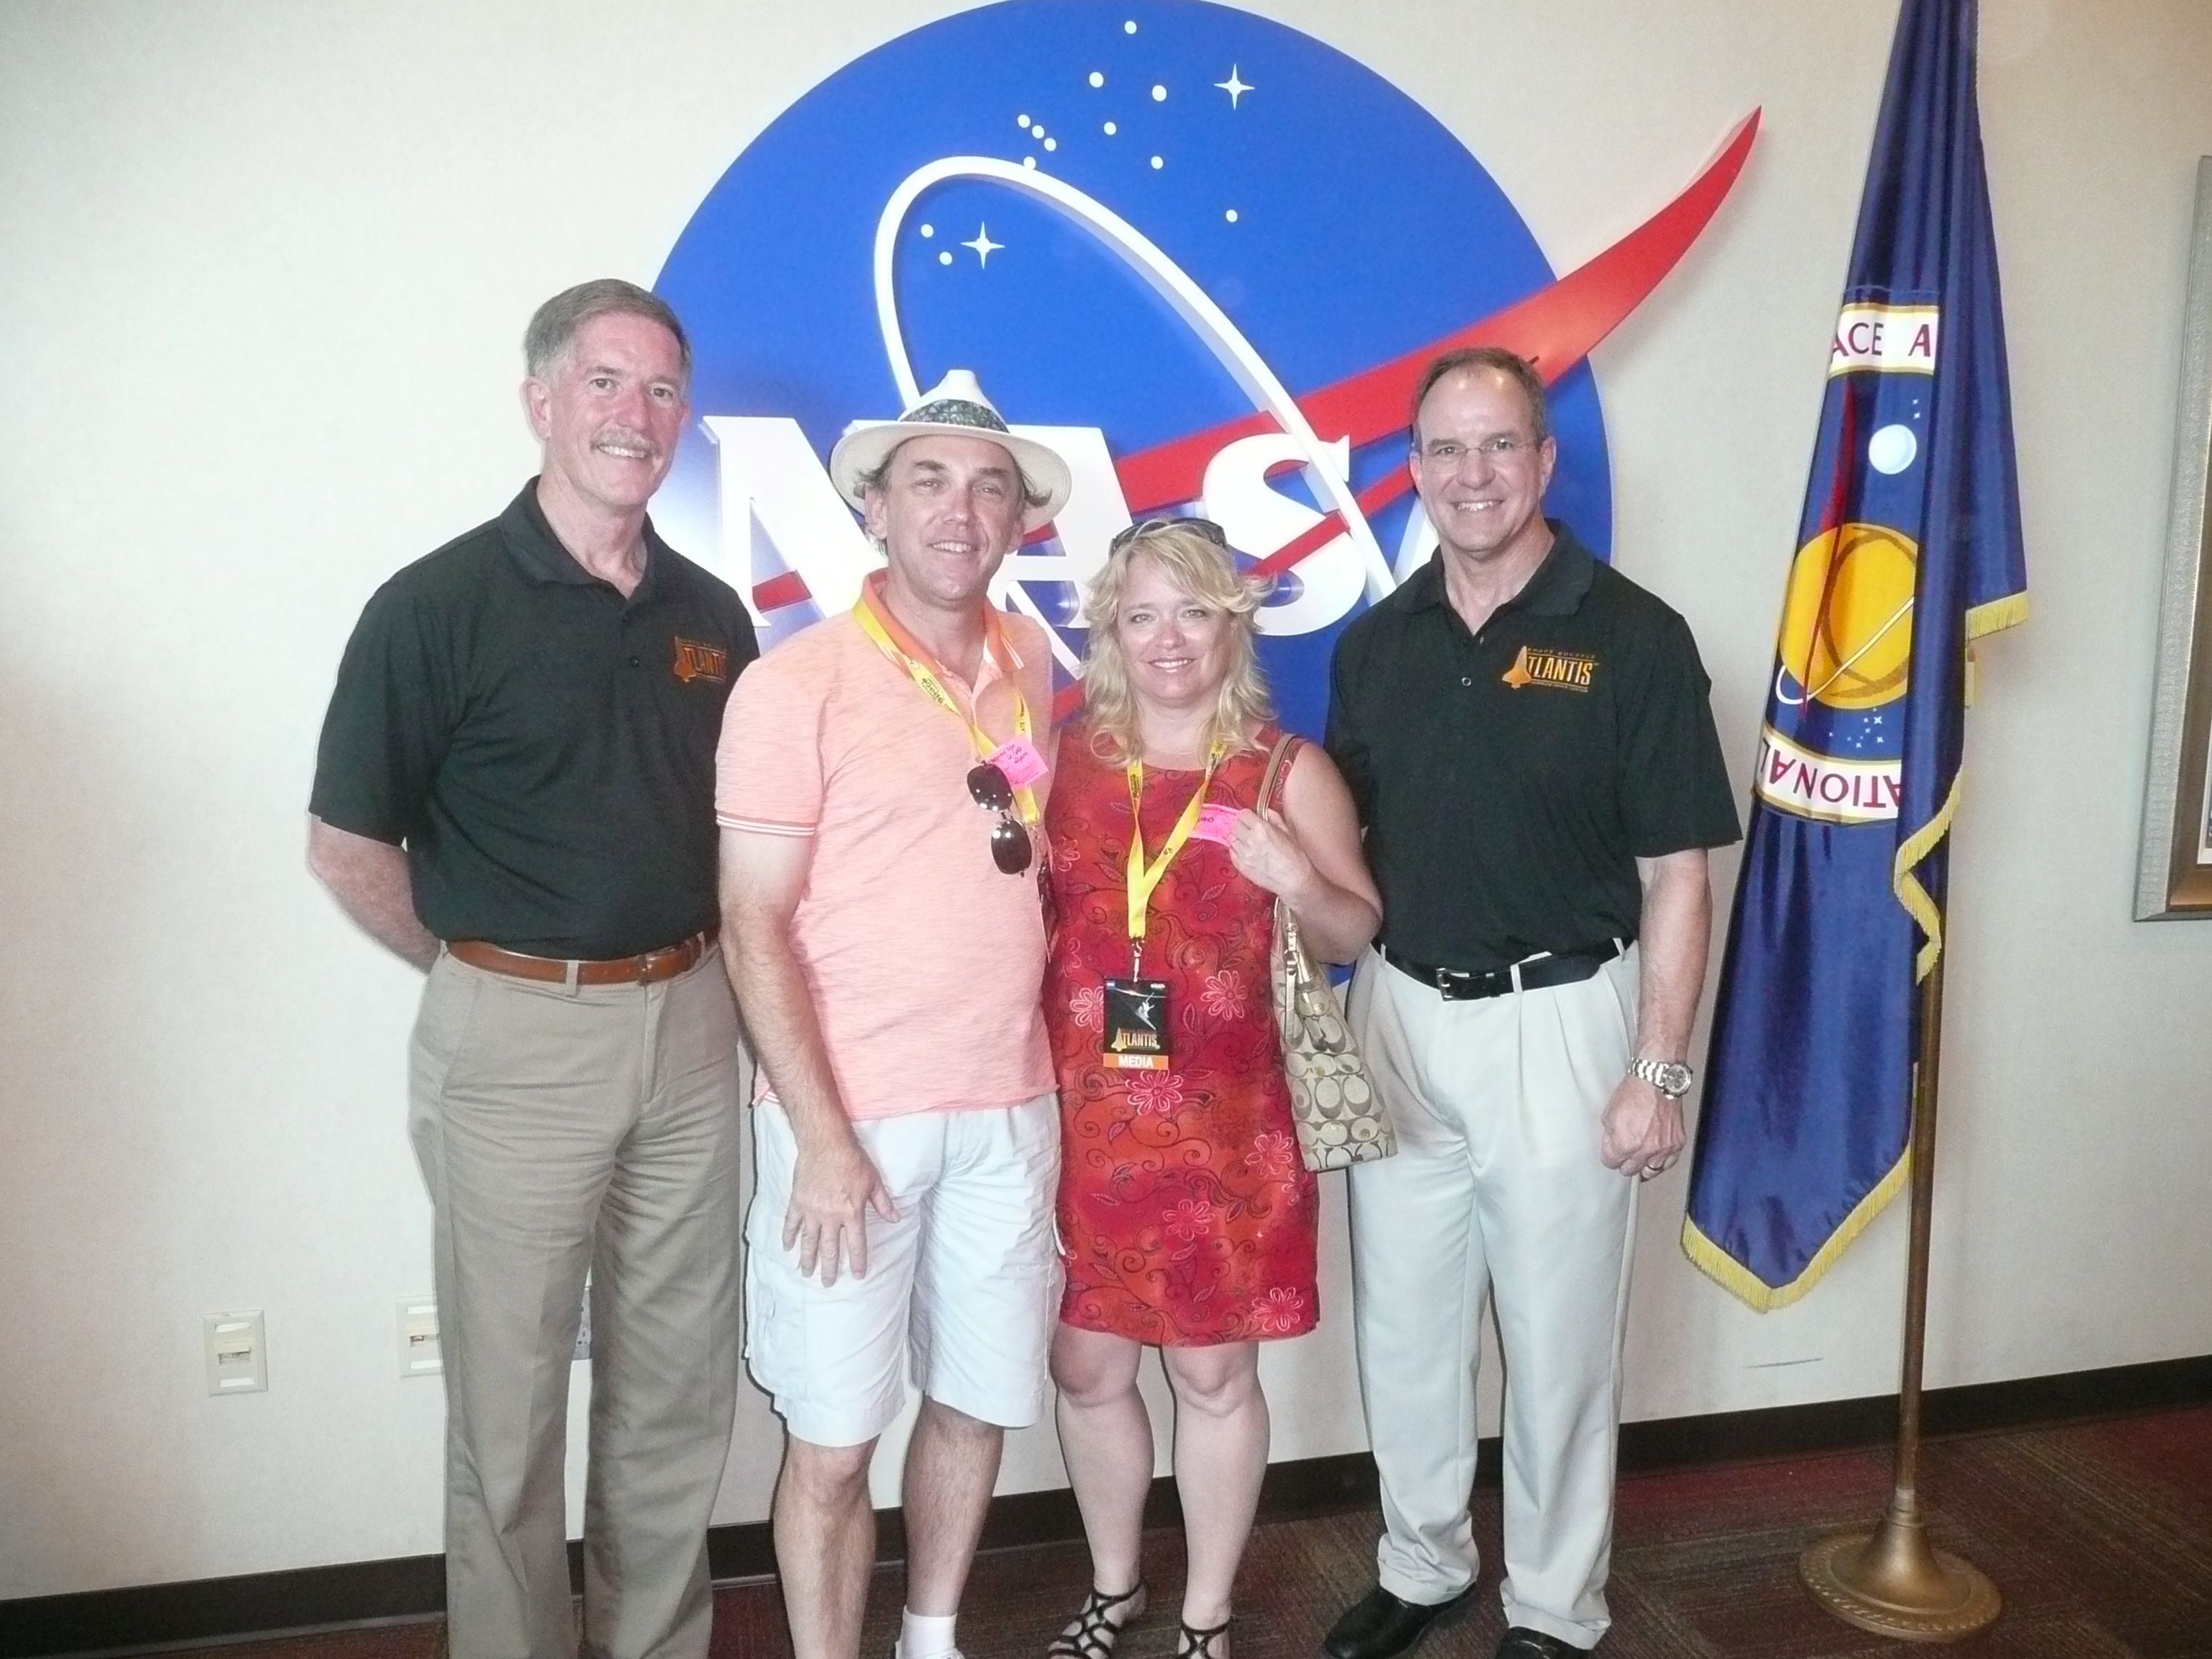 Meeting an astronaut at Kennedy Space center